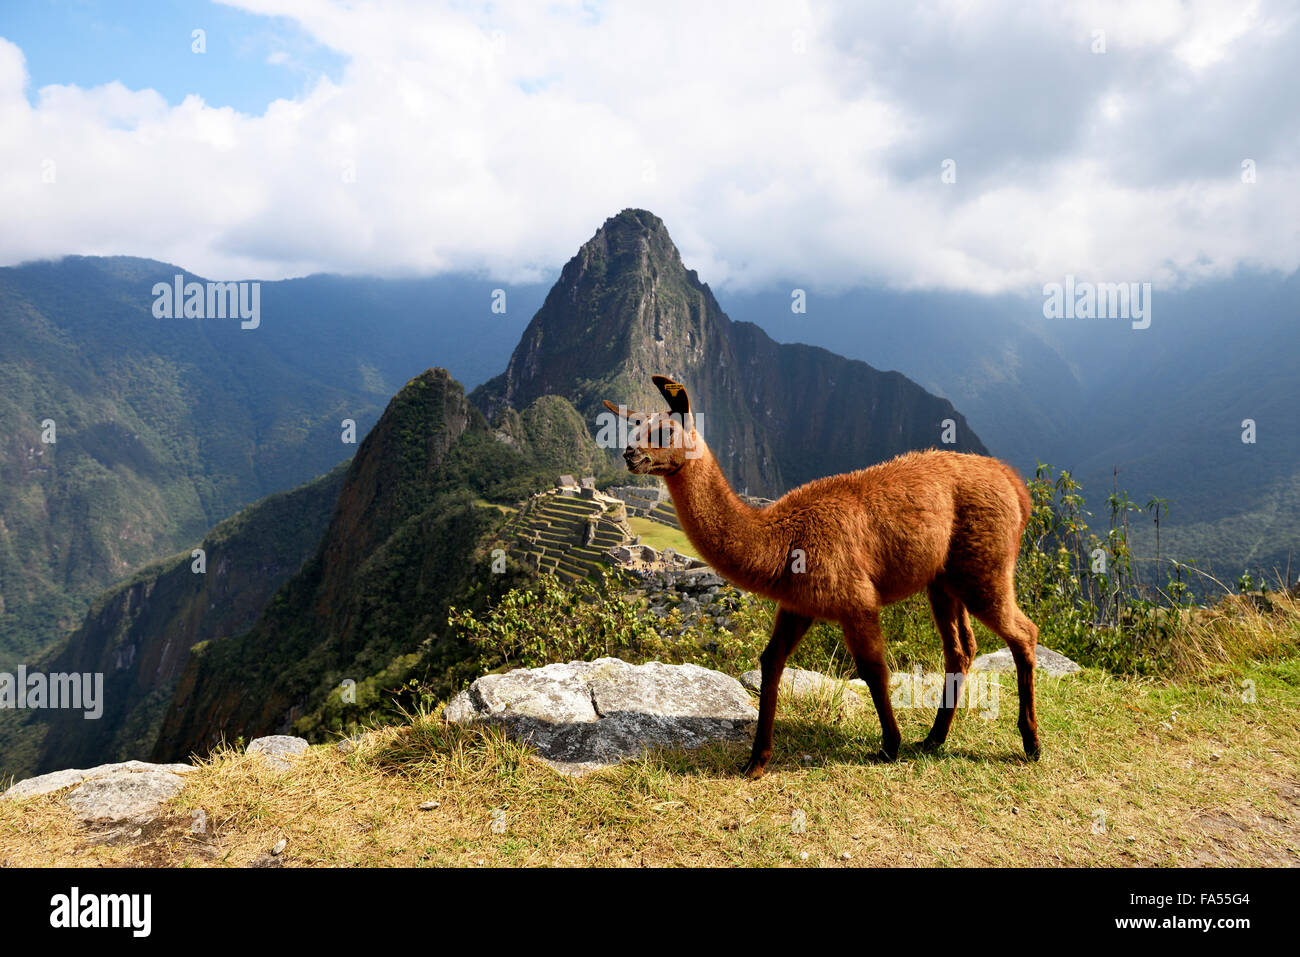 Llama (Lama glama) in front of ruined city, Inca city of Machu Picchu, Huayna Picchu Mountain behind, World Heritage - Stock Image